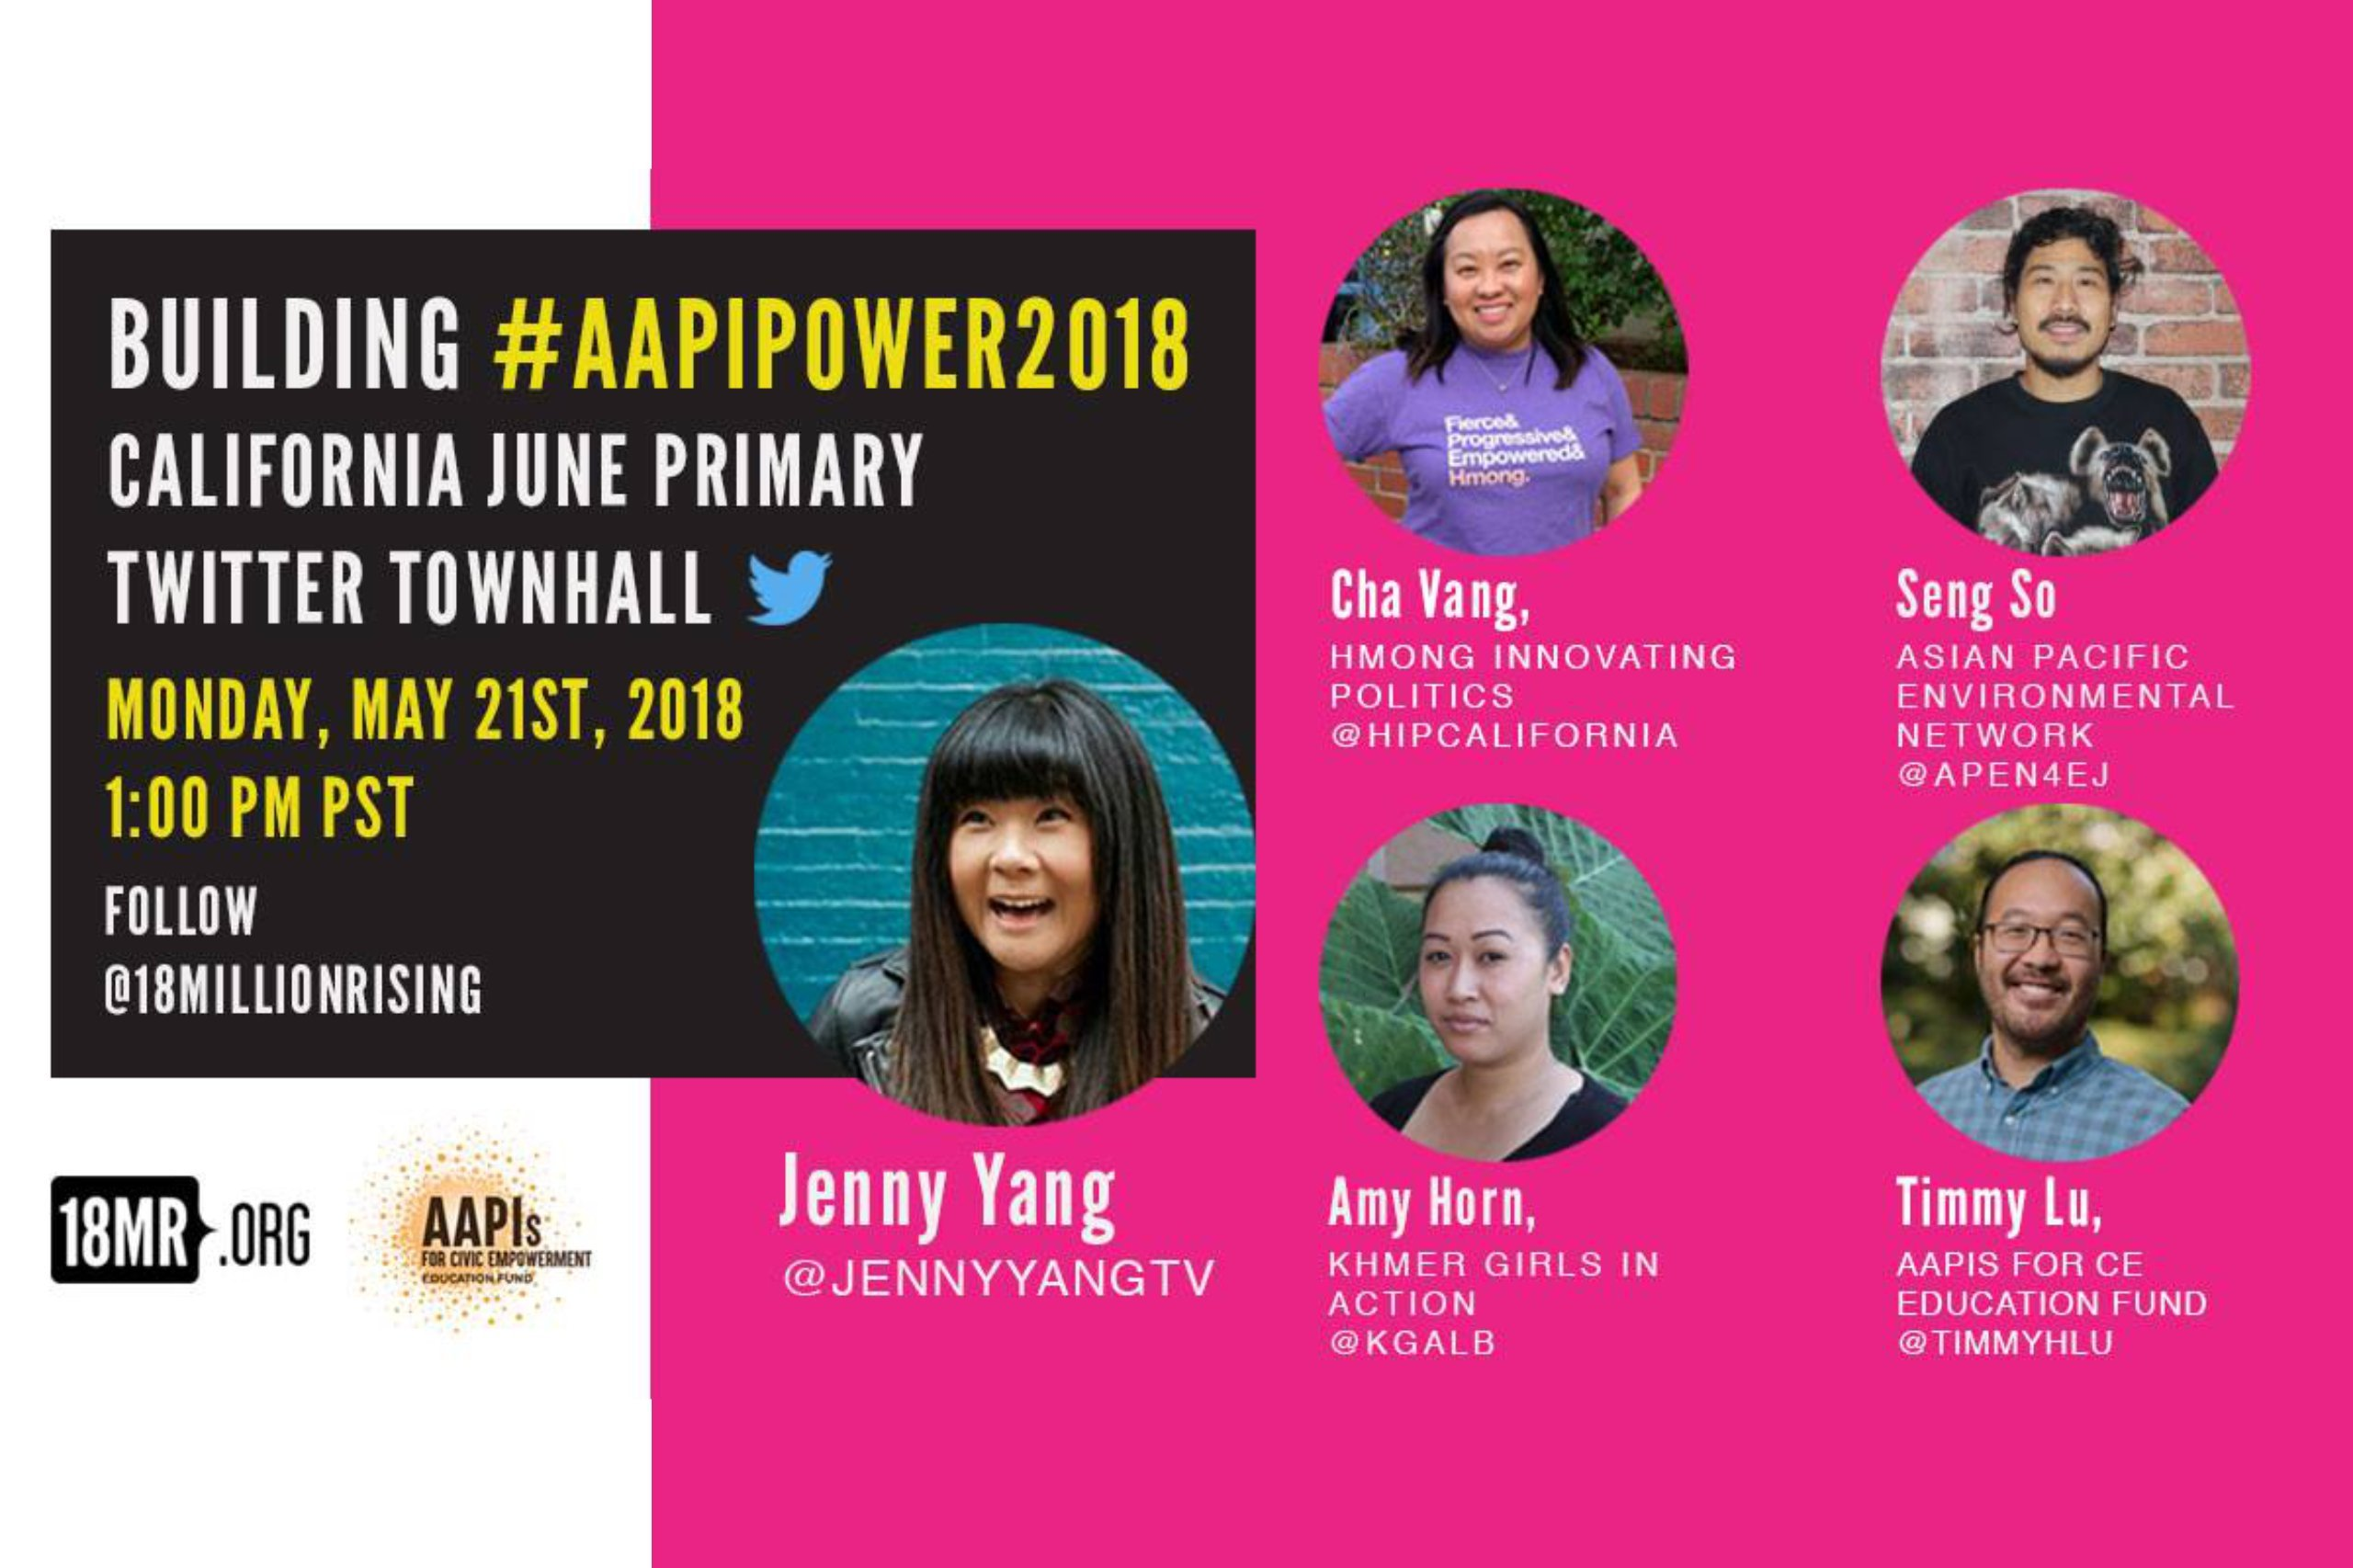 #AAPIPower2018 CA June Primary Twitter Townhall!